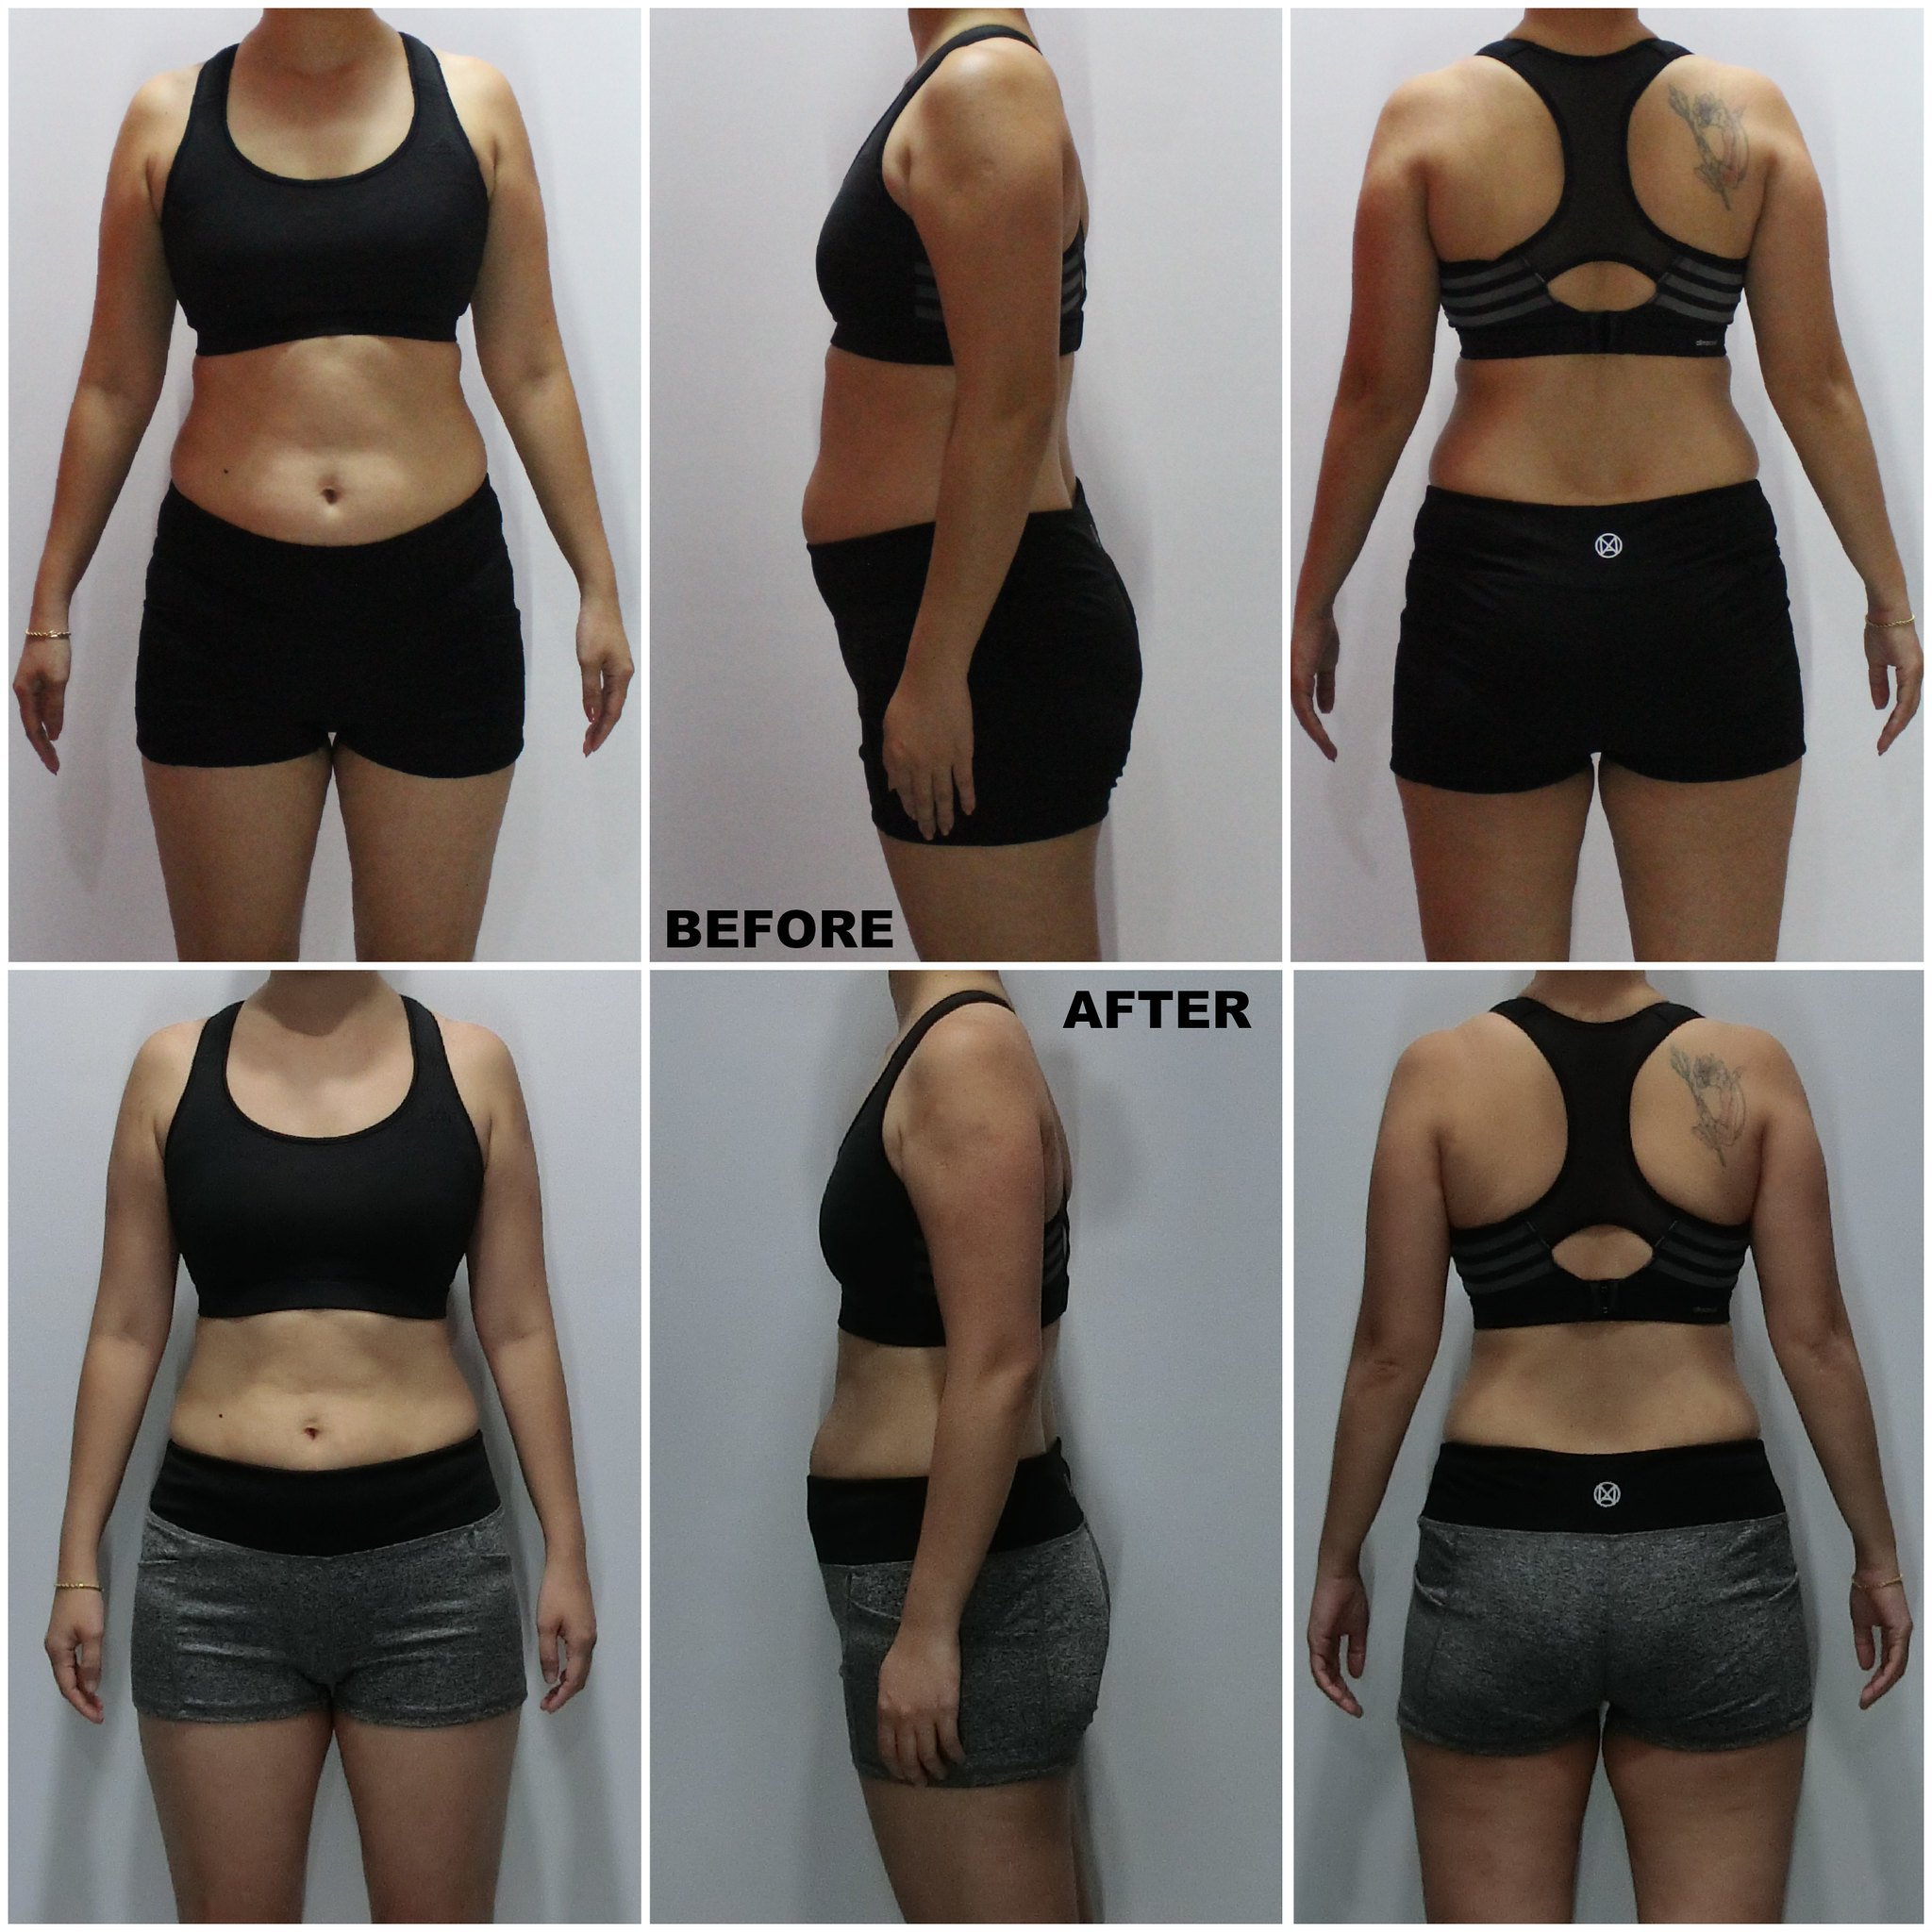 Absolute Slimming Bugis Review